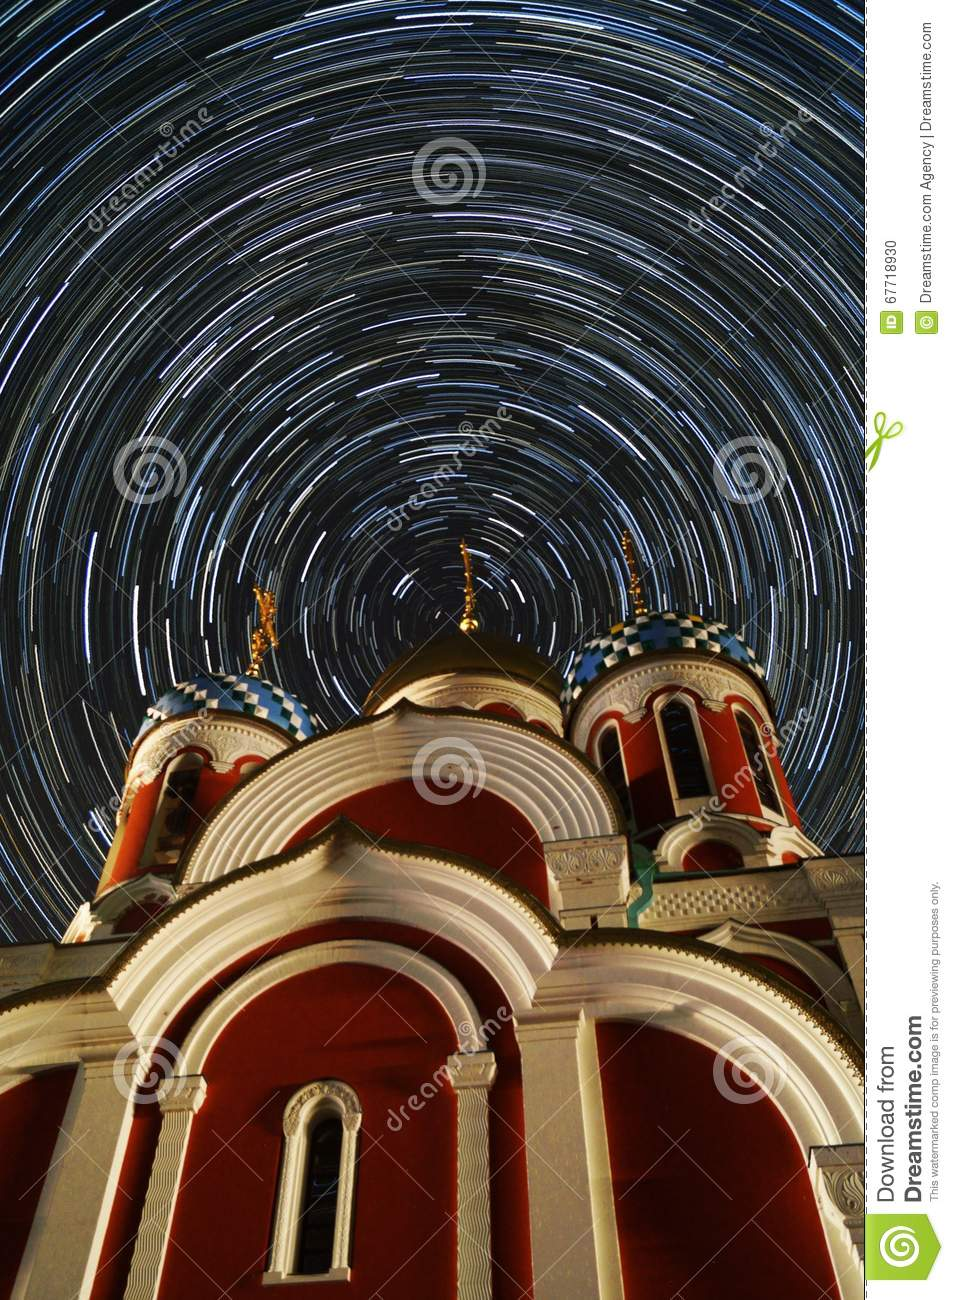 Orthodox Church of St. George - the town of Medyn, Kaluga region in Russia.